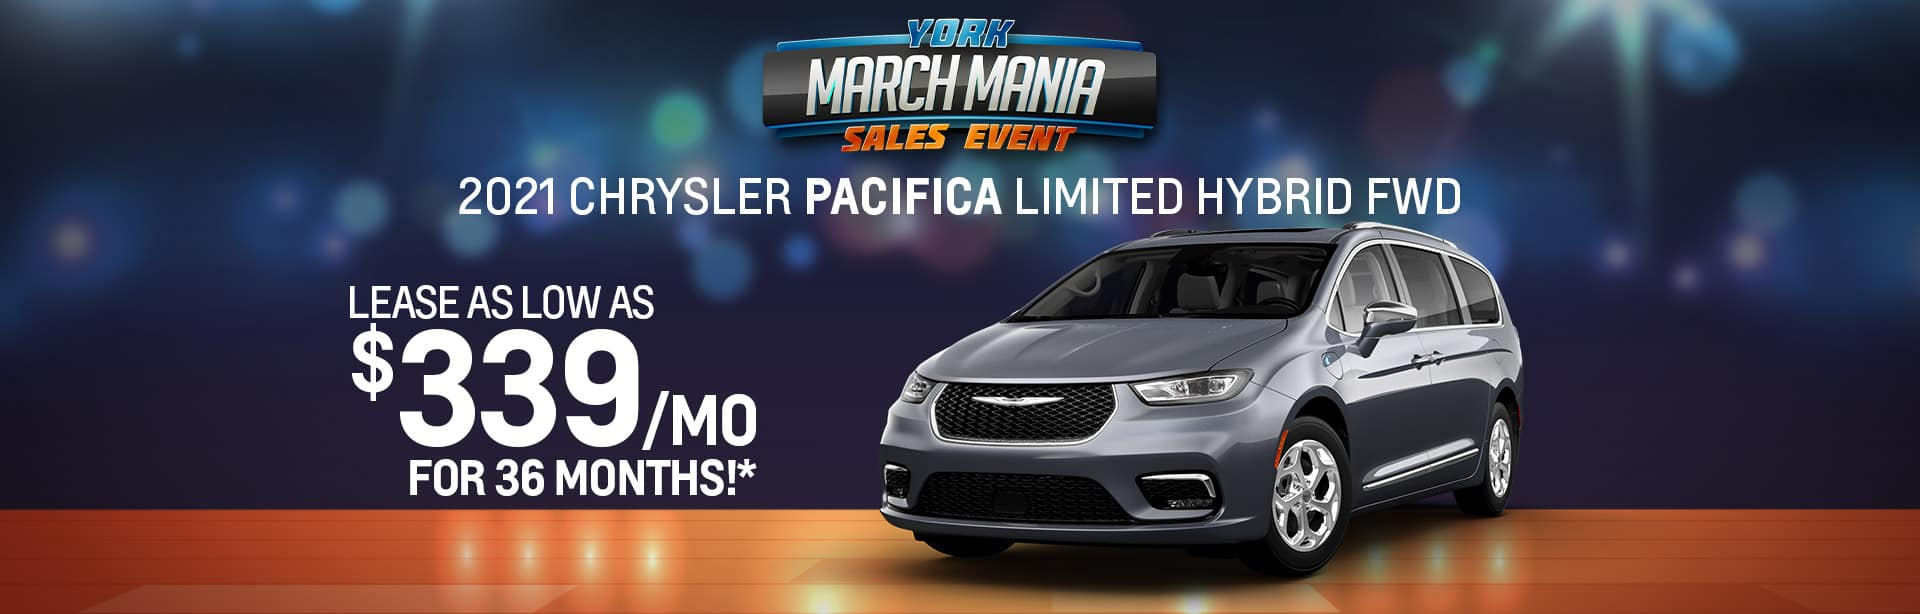 Best lease offer on a new 2021 Chrysler Pacifica near Indianapolis IN